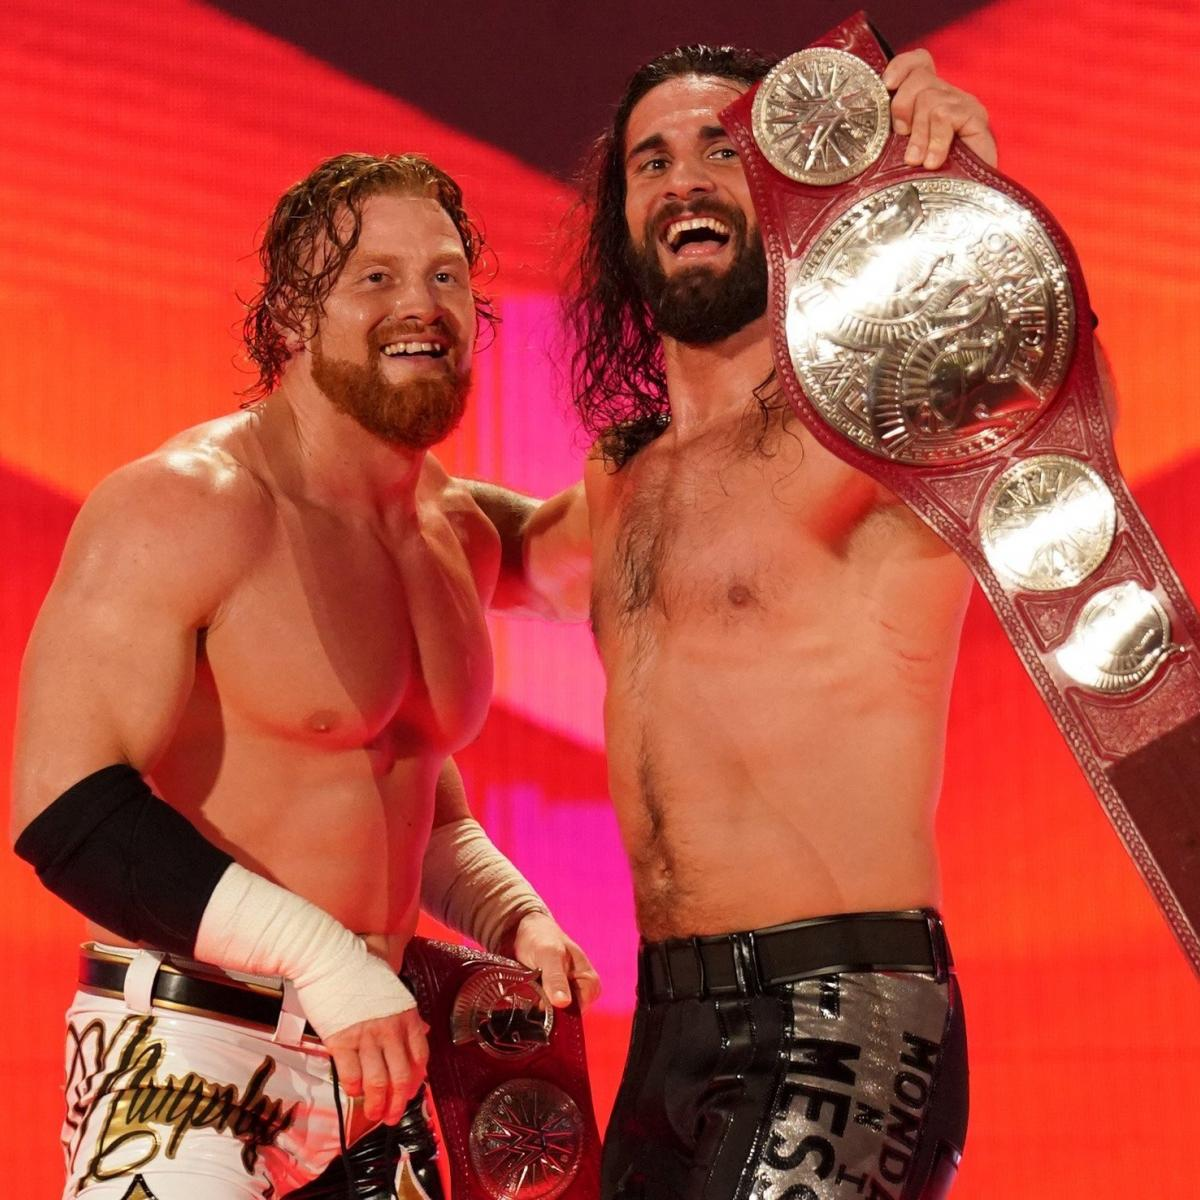 Which WWE Champions Are Most Likely to Enter WrestleMania 36 Without a Title?